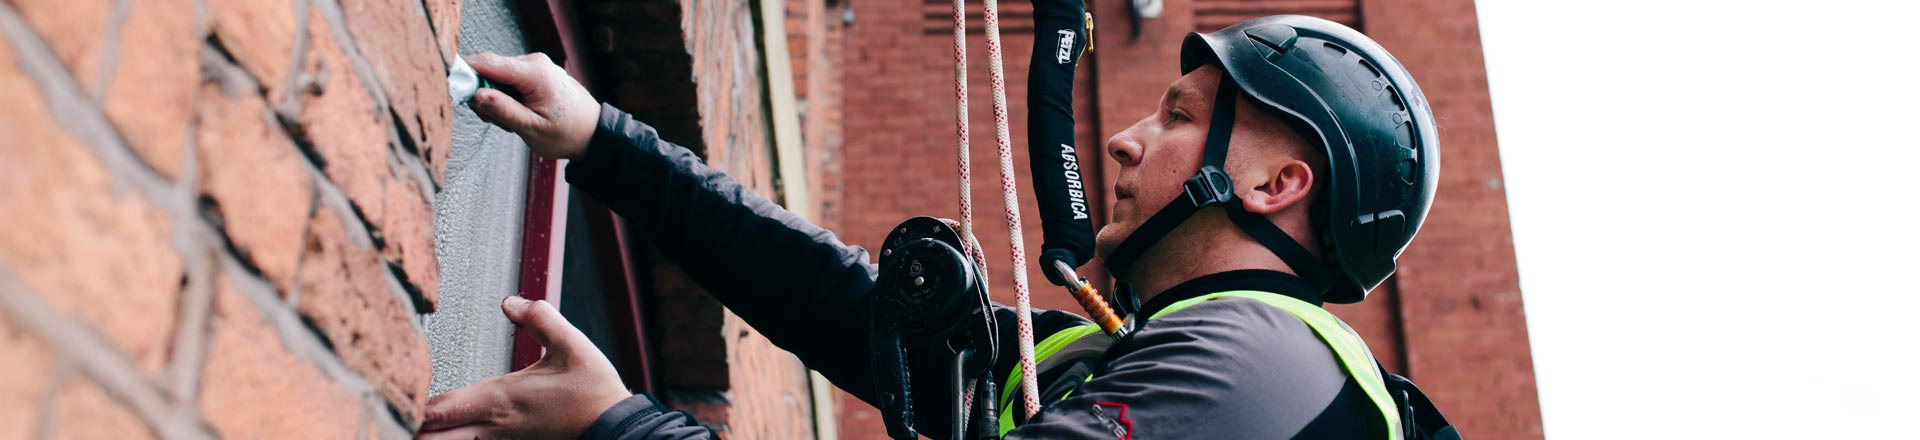 Abseiling/Rope Access Window Cleaning in Nottingham - HCS Cleaning Services